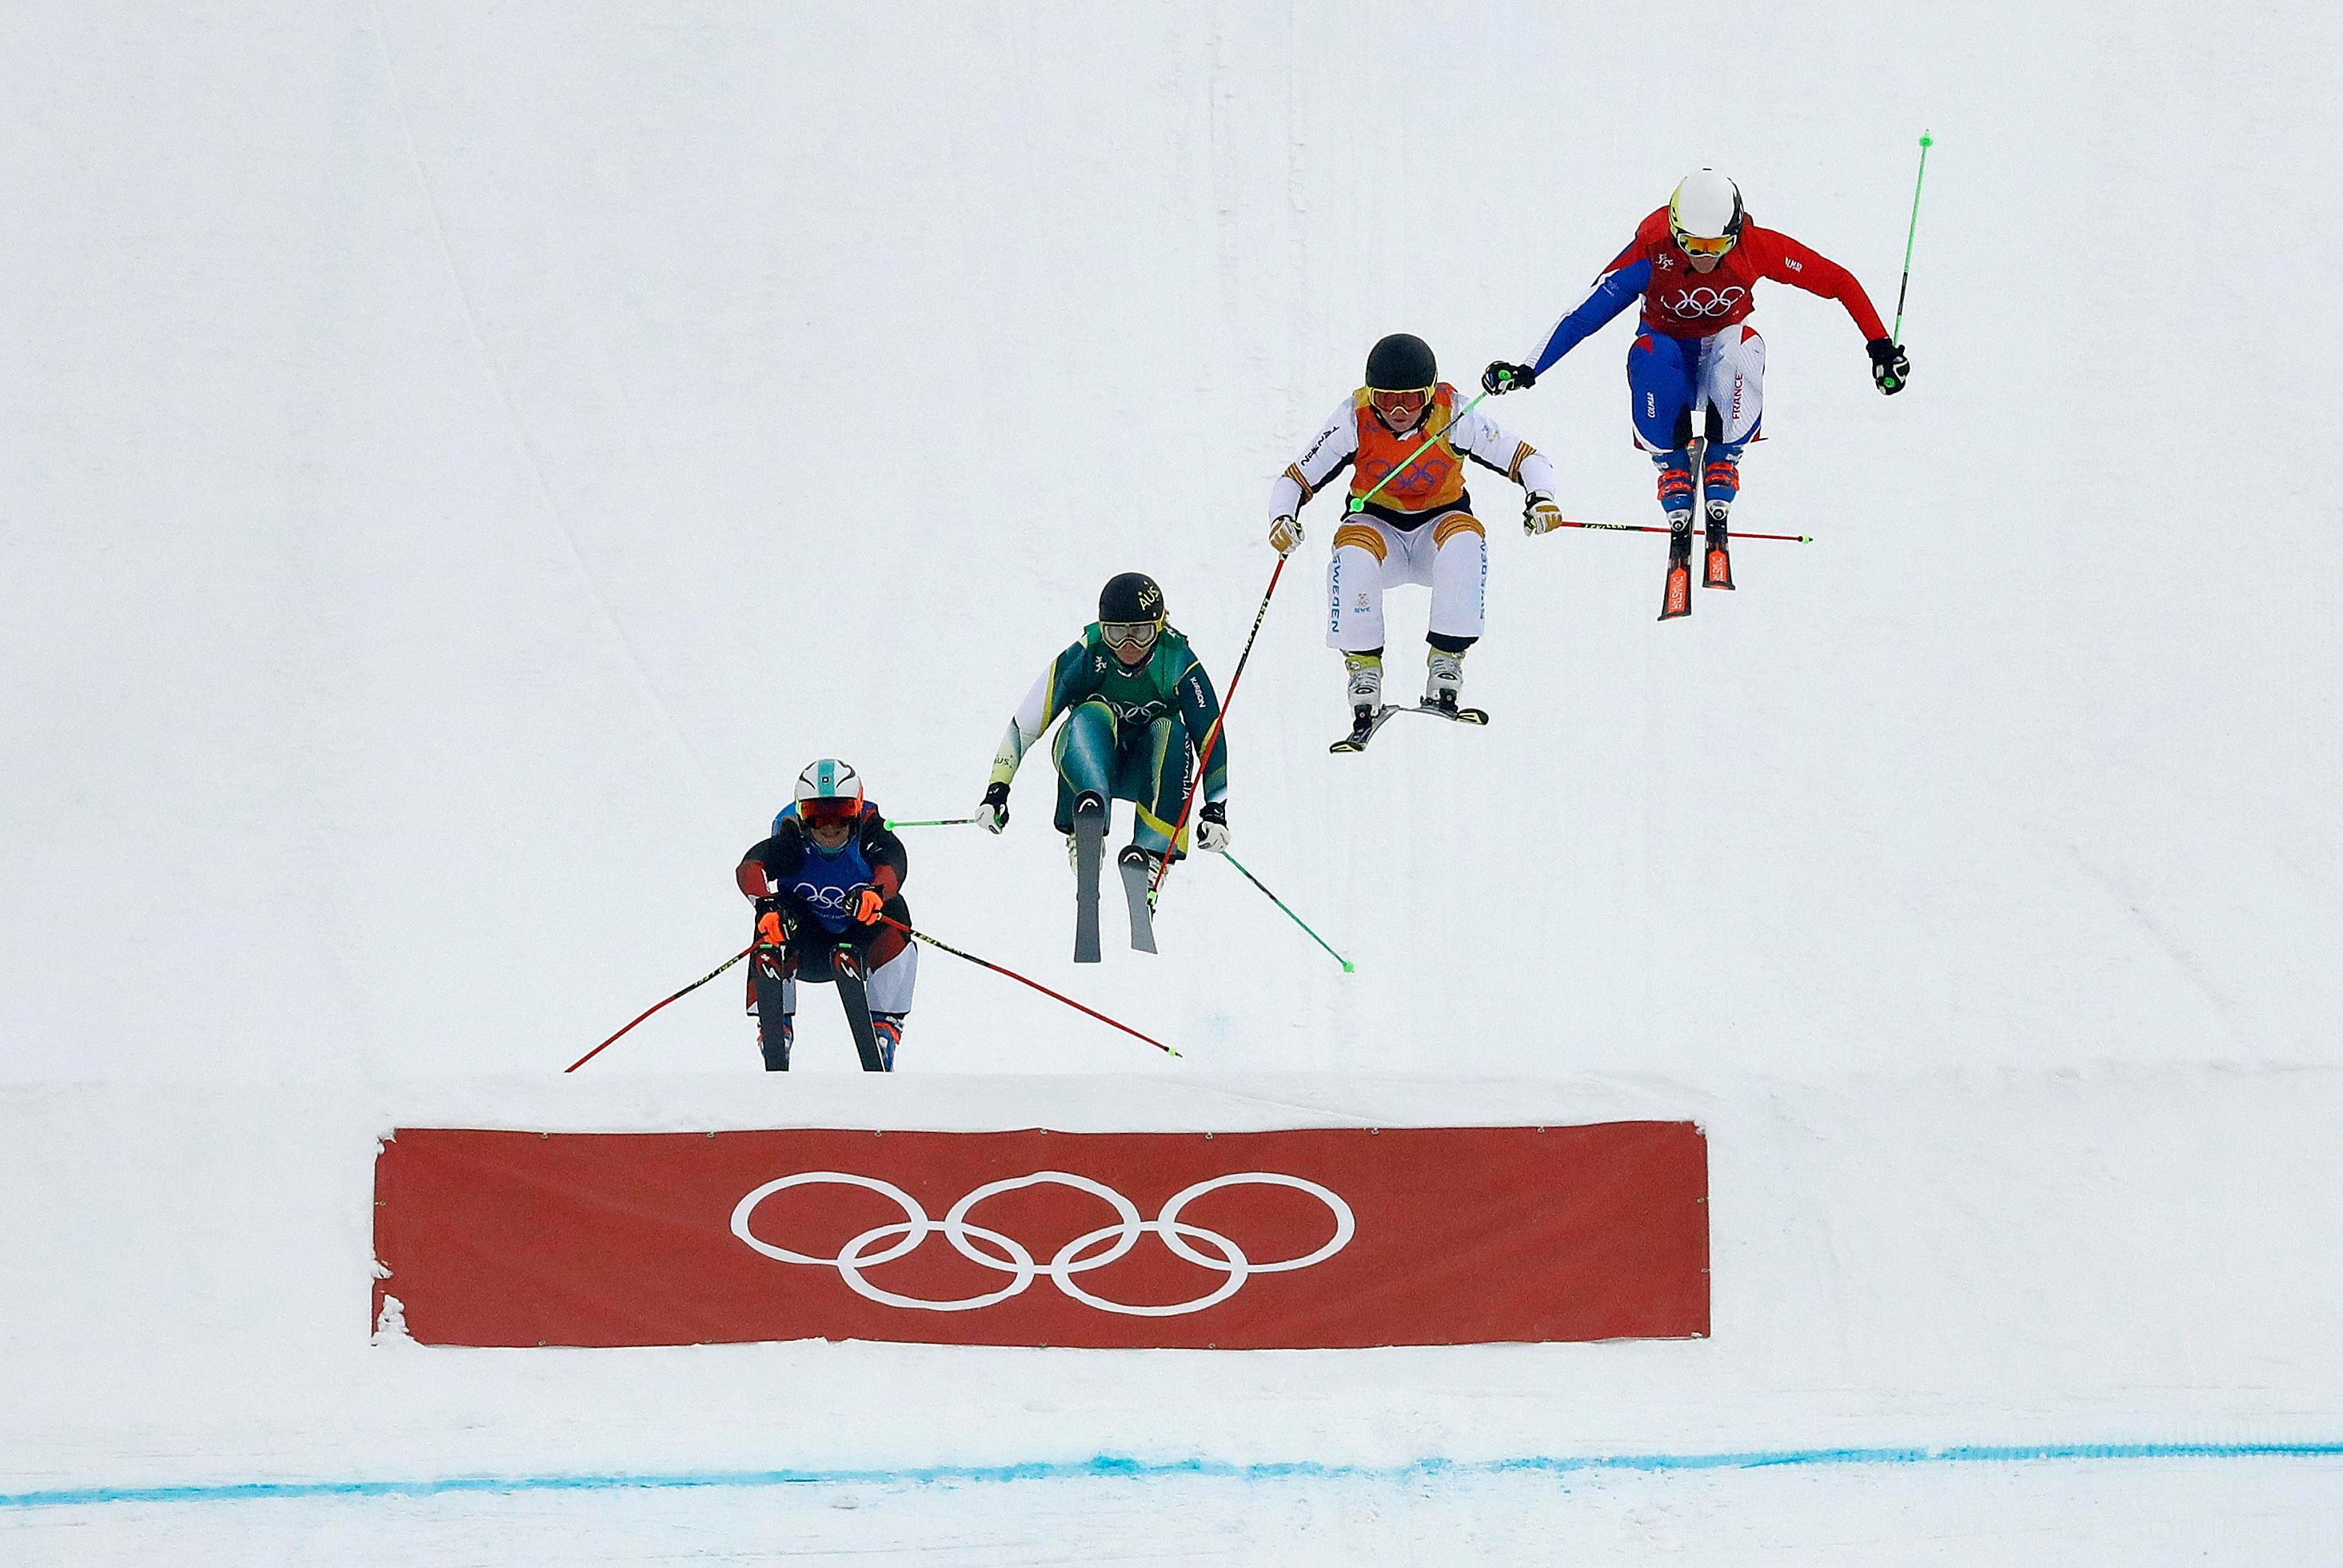 From left; Sanna Luedi, of Switzerland, Sami Kennedy-Sim, of Australia, Lisa Andersson, of Sweden, and Alizee Baron, of France, run the course during the women's ski cross small final at Phoenix Snow Park at the 2018 Winter Olympics in Pyeongchang, South Korea, Friday, Feb. 23, 2018. (AP Photo/Kin Cheung) (AP Photo/Lee Jin-man)